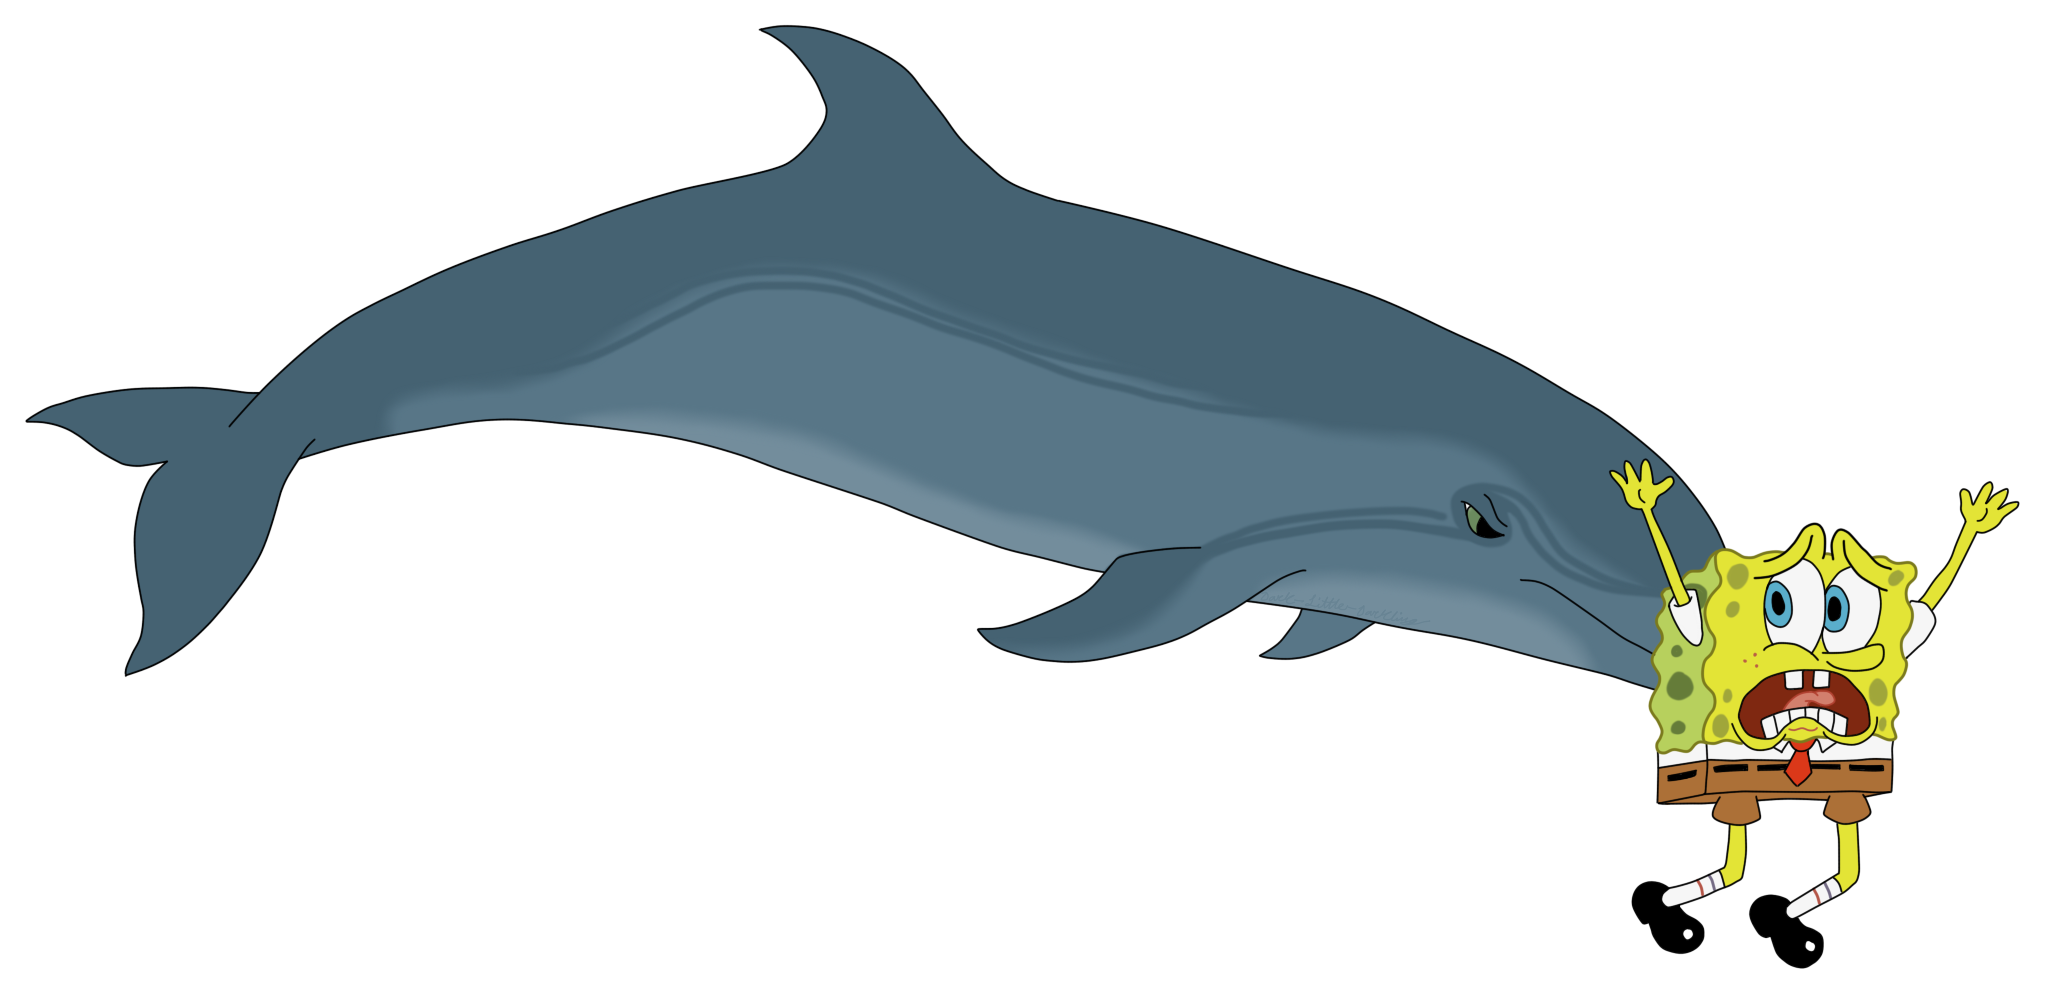 Porpoise drawing. A bottlenose dolphin sponging